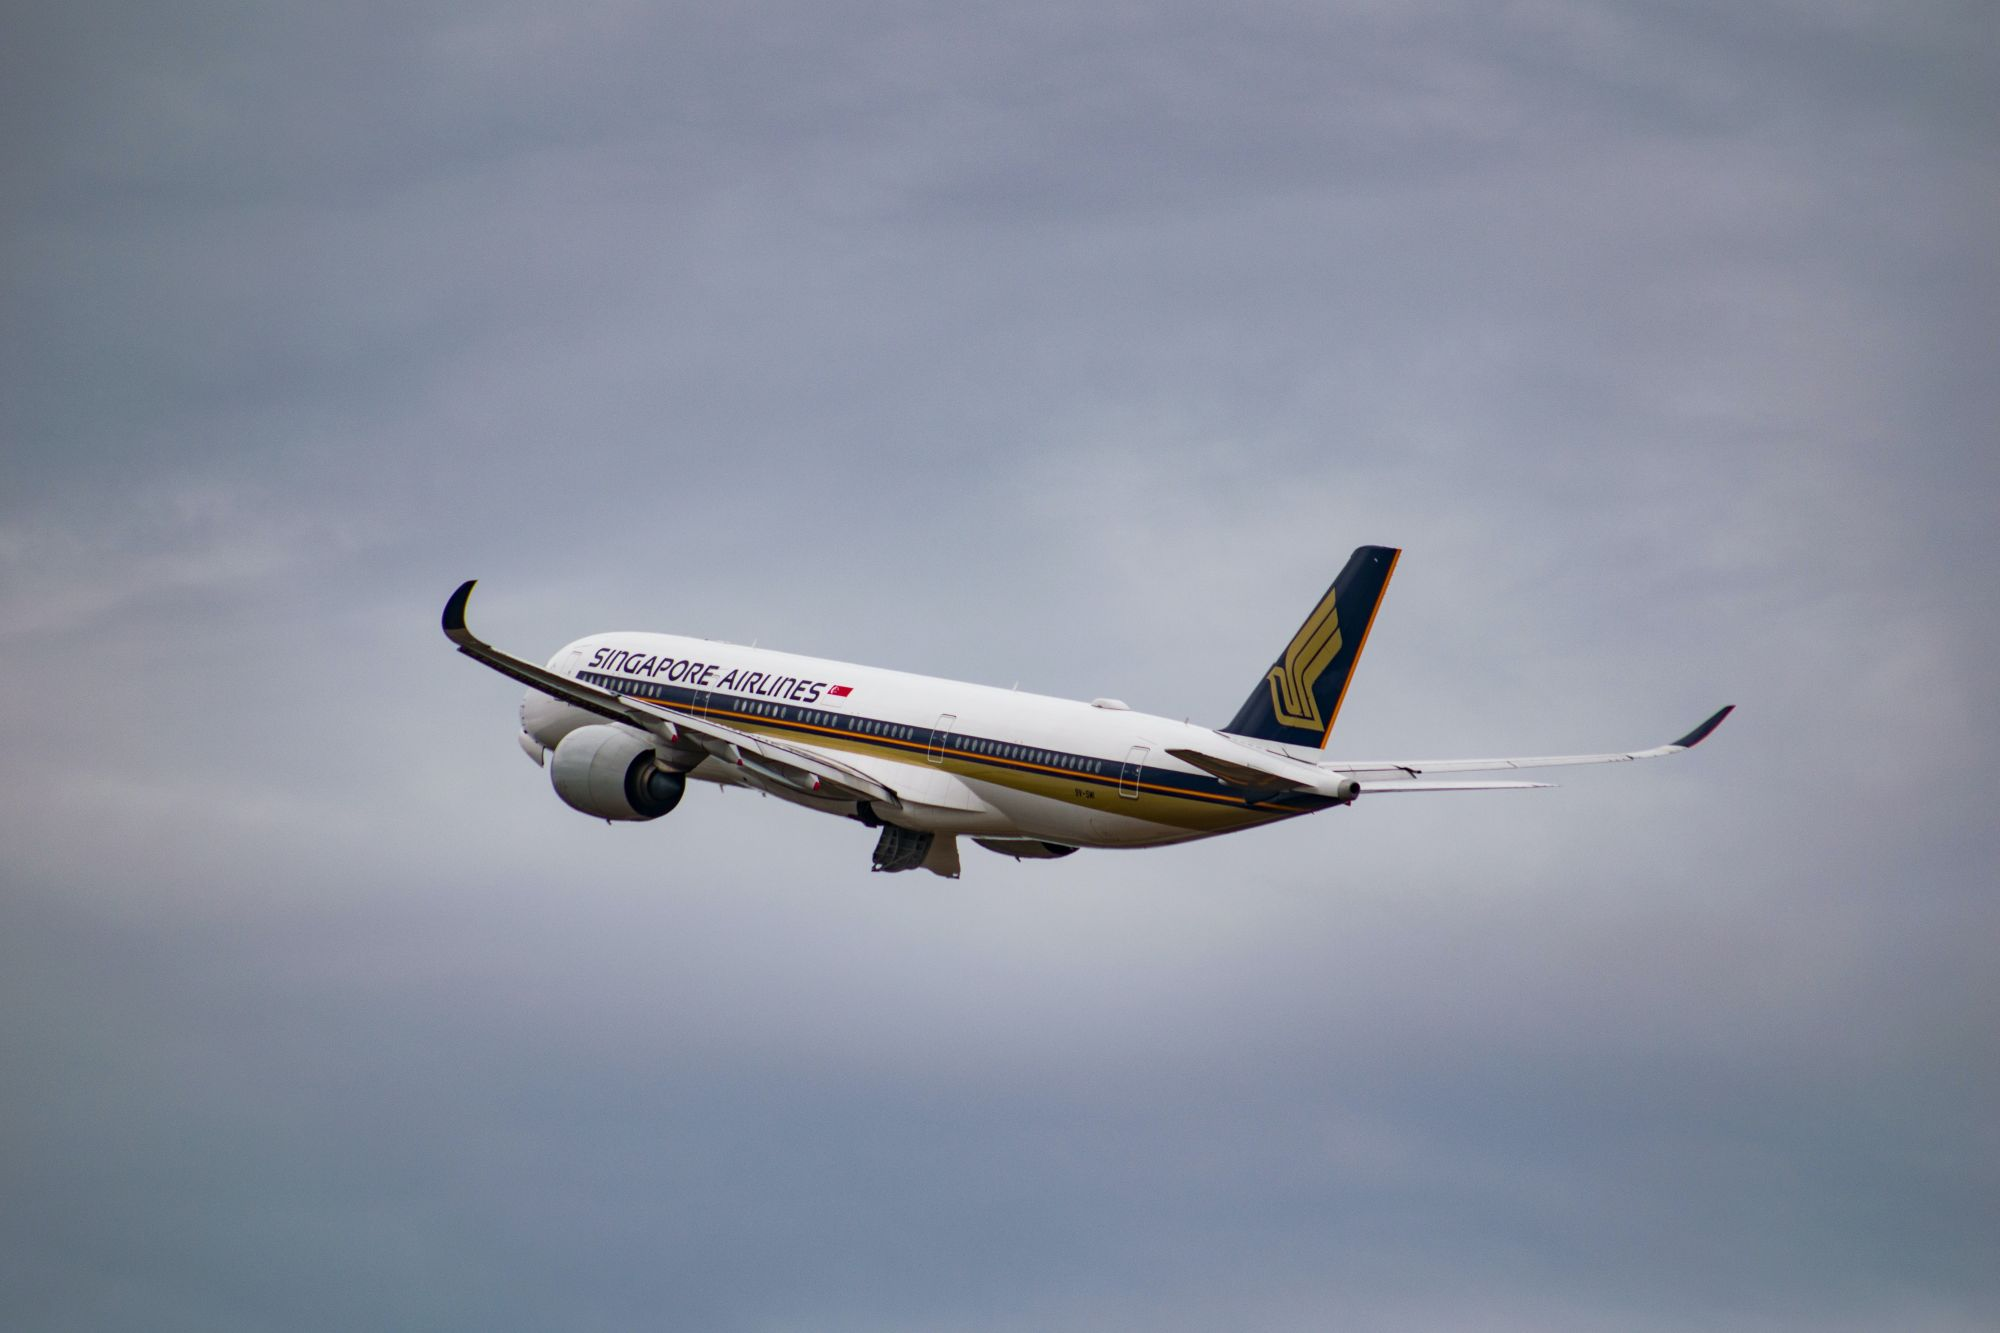 Singapore Airlines May Soon Be The First To Have A Fully-Vaccinated Crew